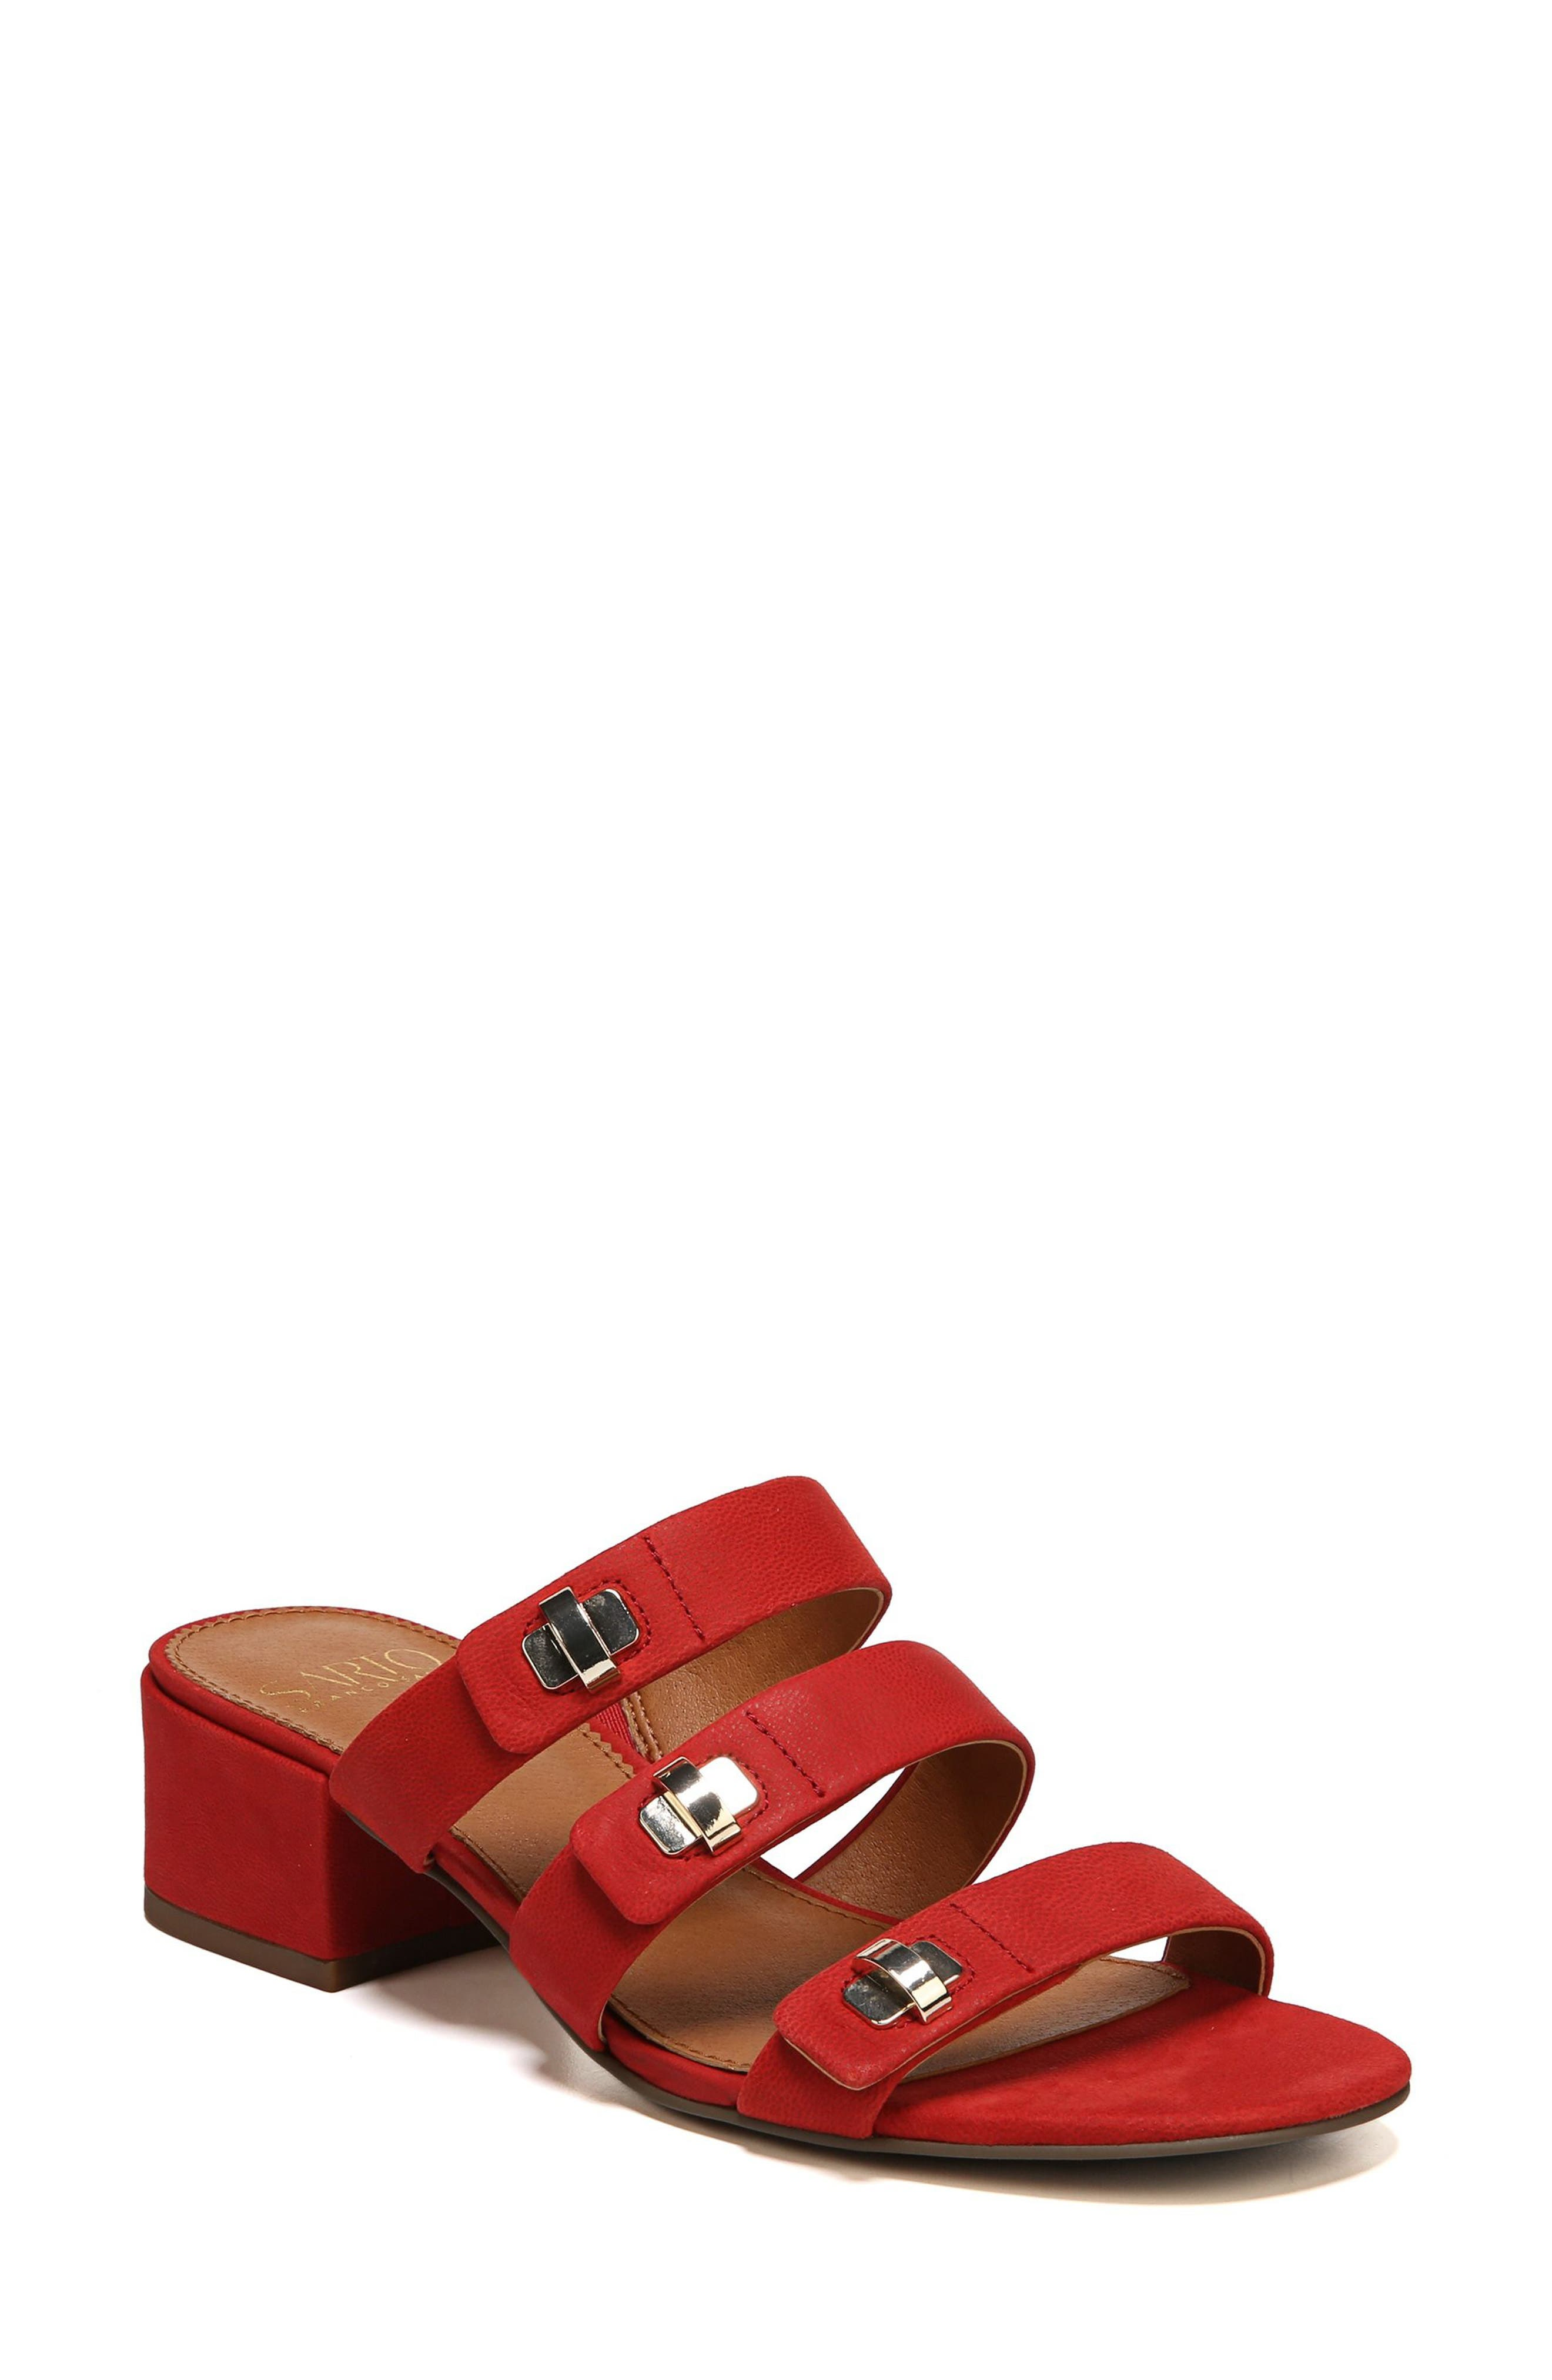 Arabesque Strappy Slide Sandal,                             Main thumbnail 1, color,                             Pop Red Nubuck